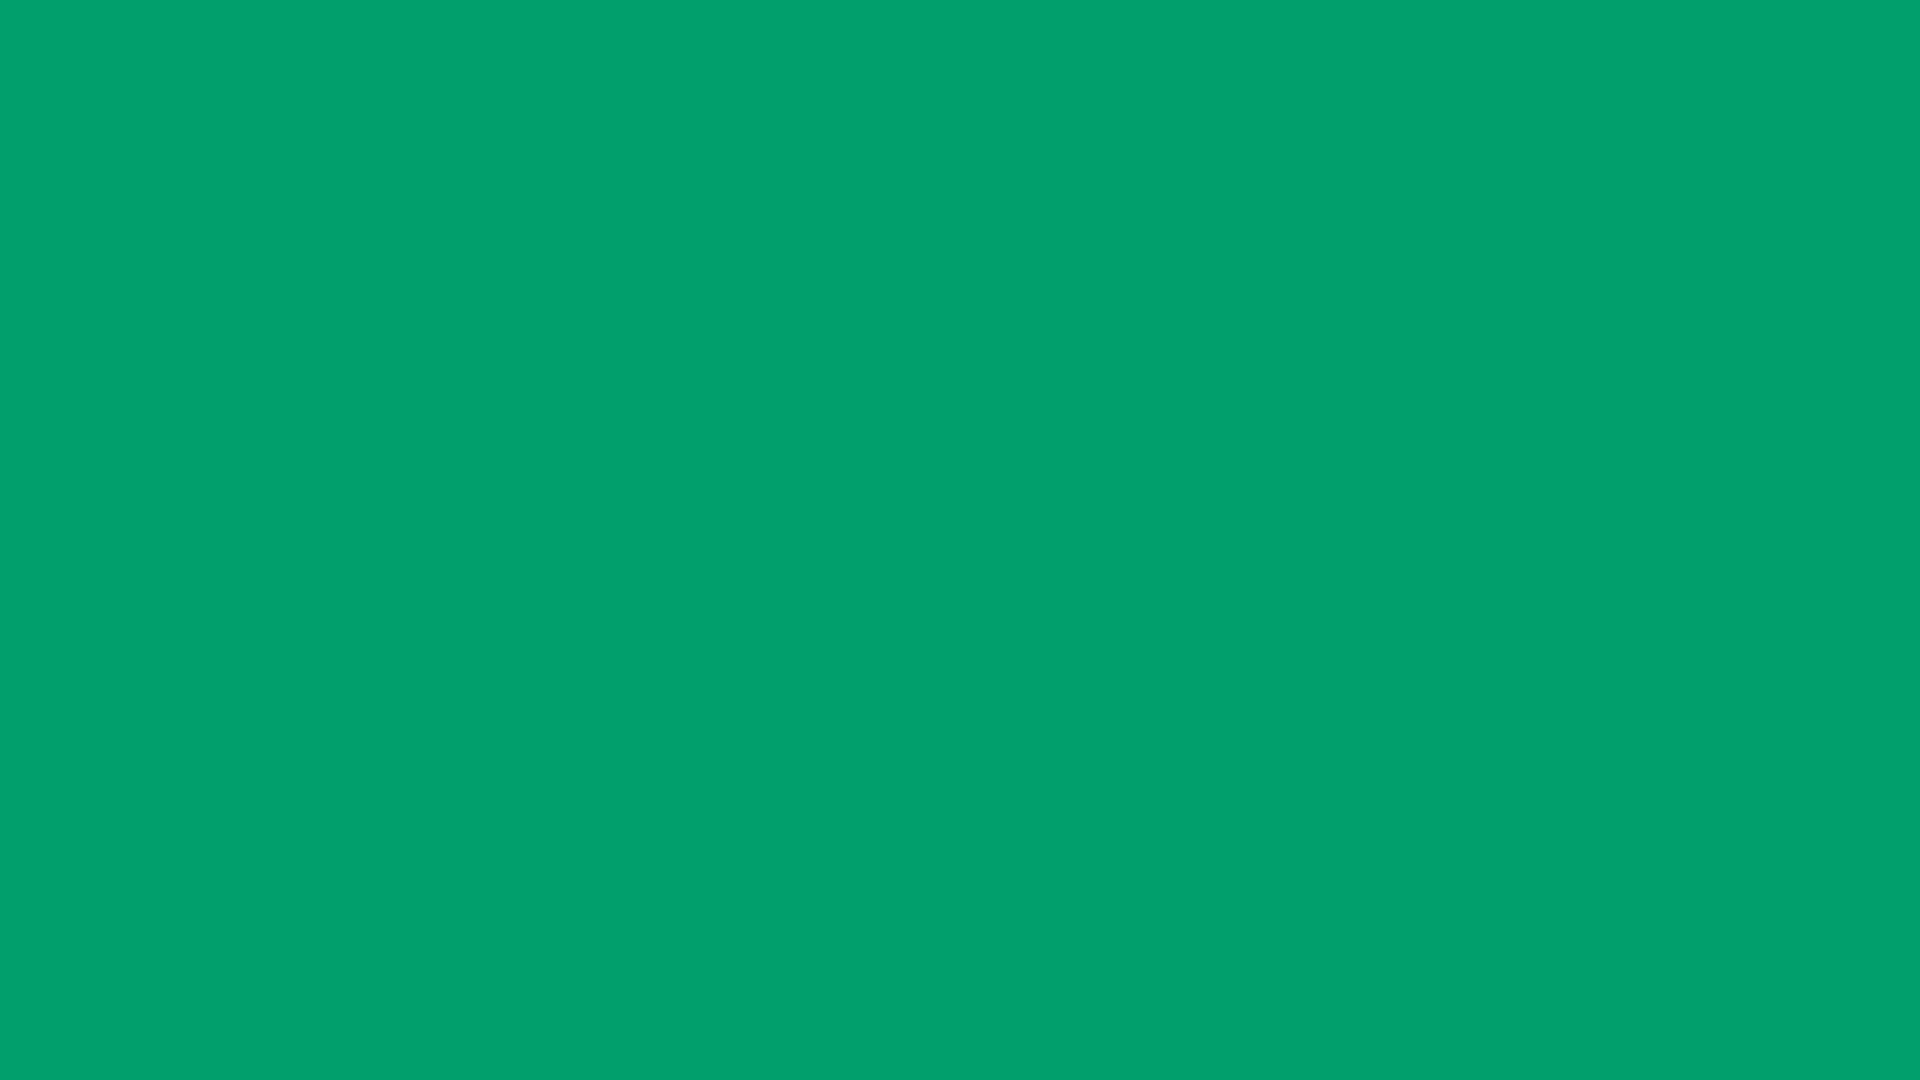 1920x1080 Green NCS Solid Color Background